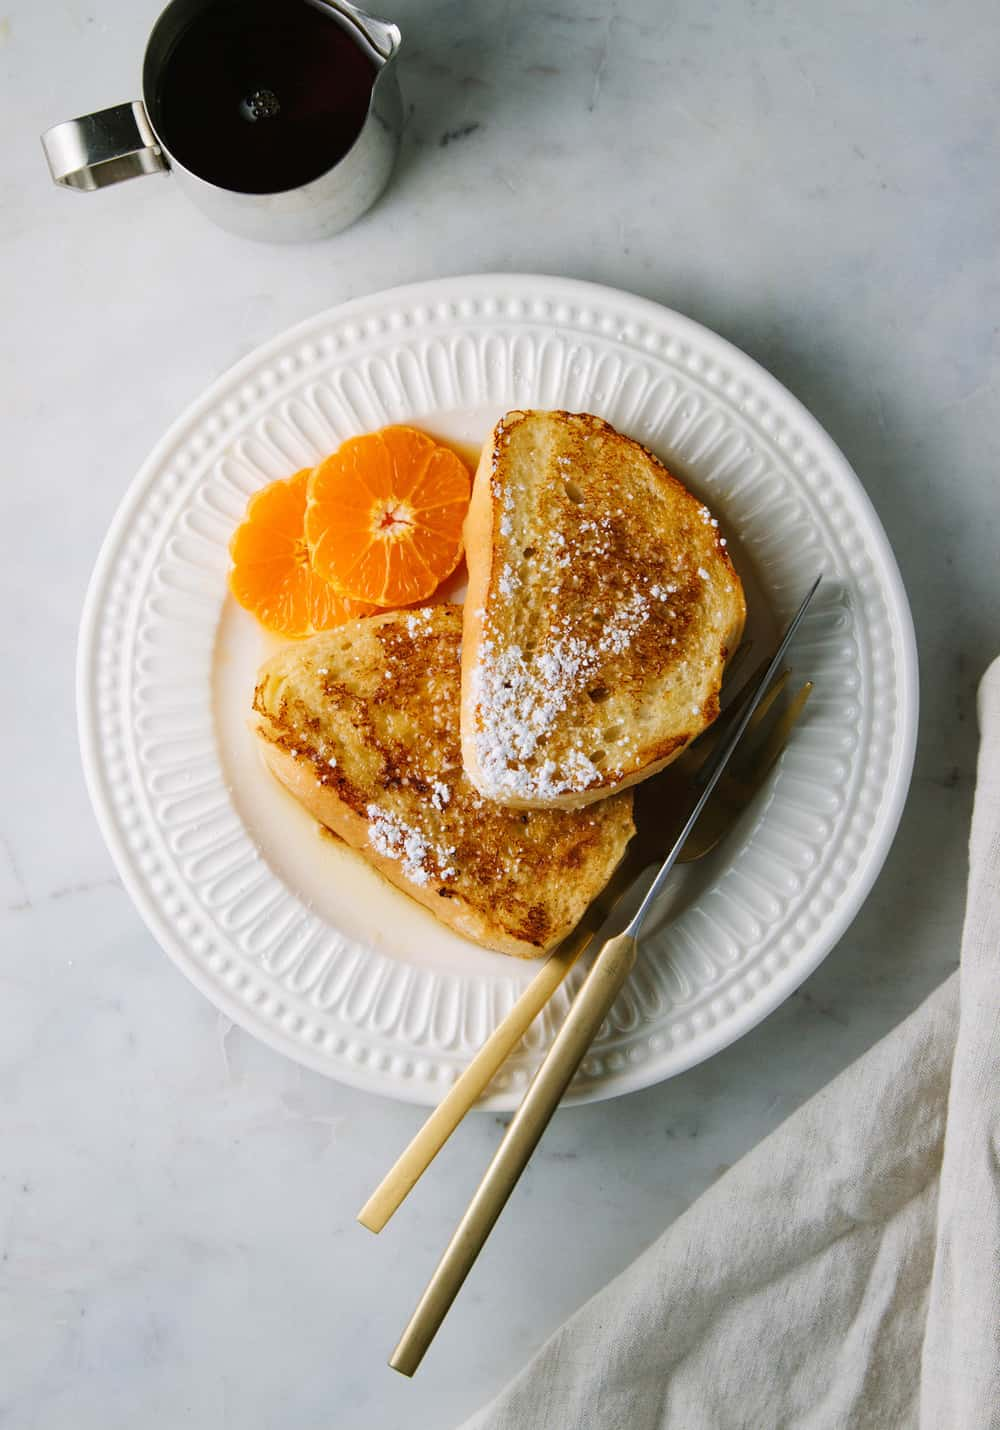 golden orange french toast on a white ceramic plate with maple syrup and orange slices